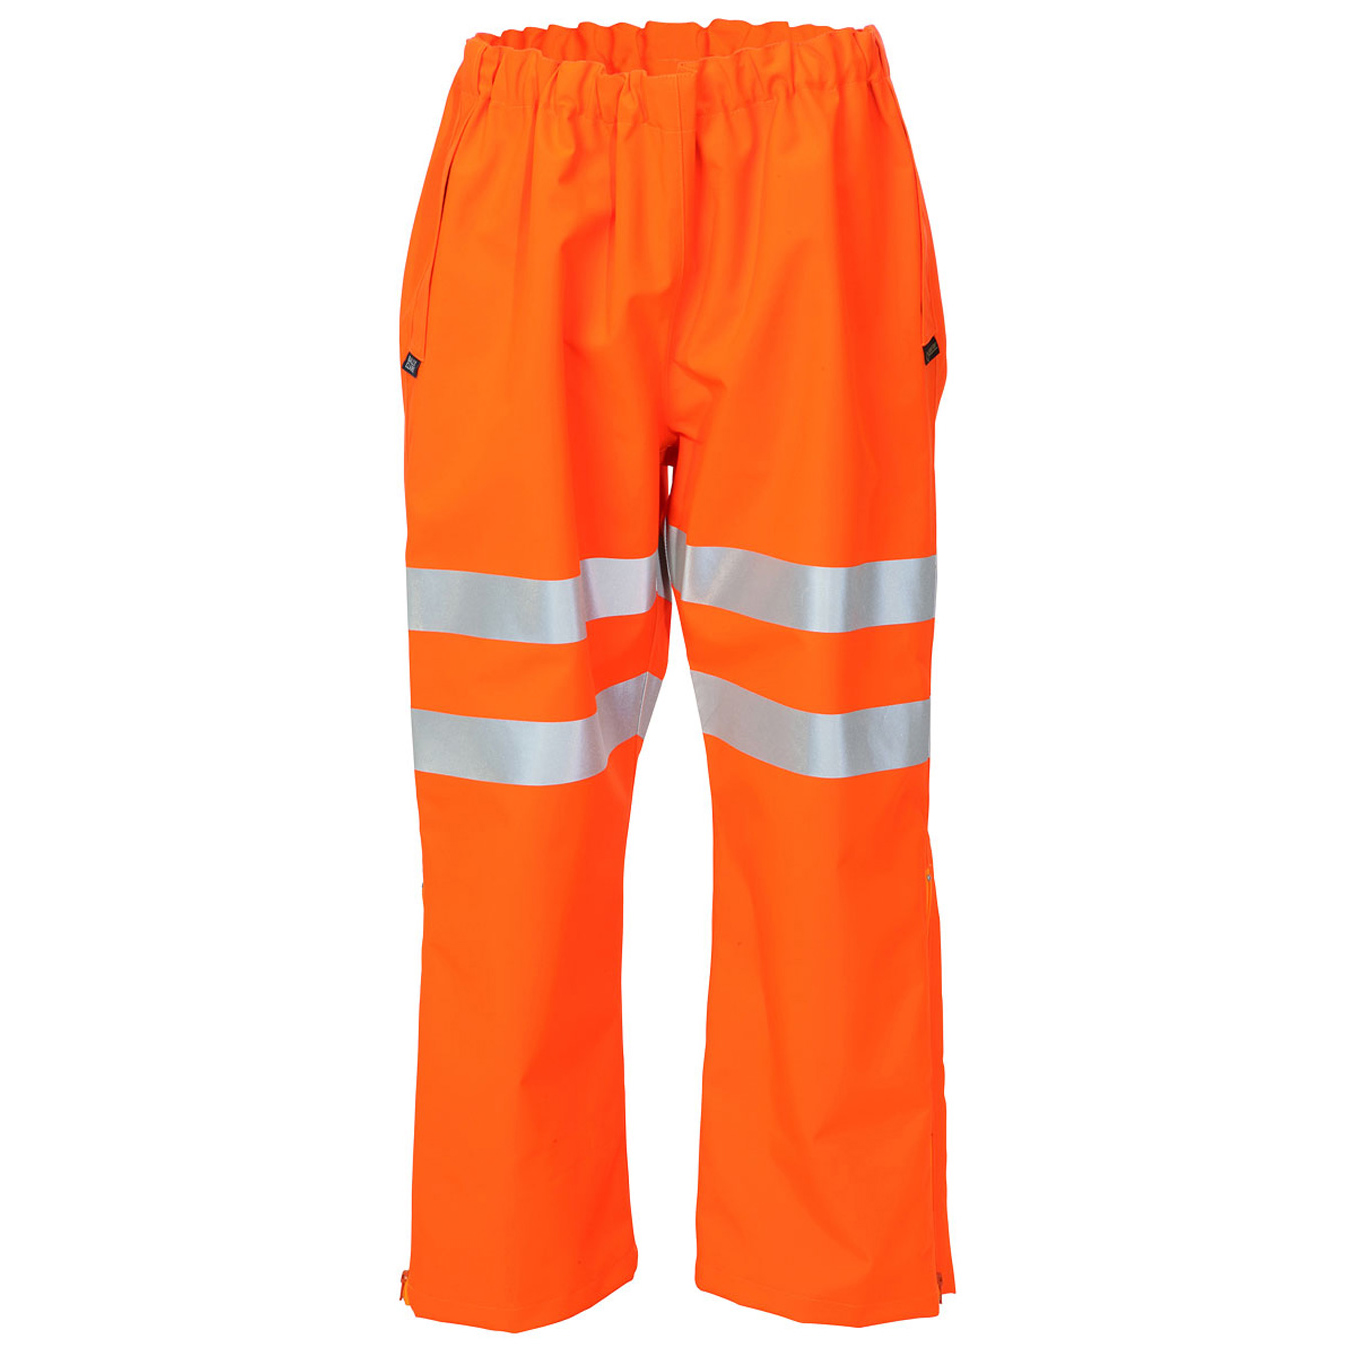 B-Seen Gore-Tex Over Trousers Foul Weather S Orange Ref GTHV160ORS *Up to 3 Day Leadtime*